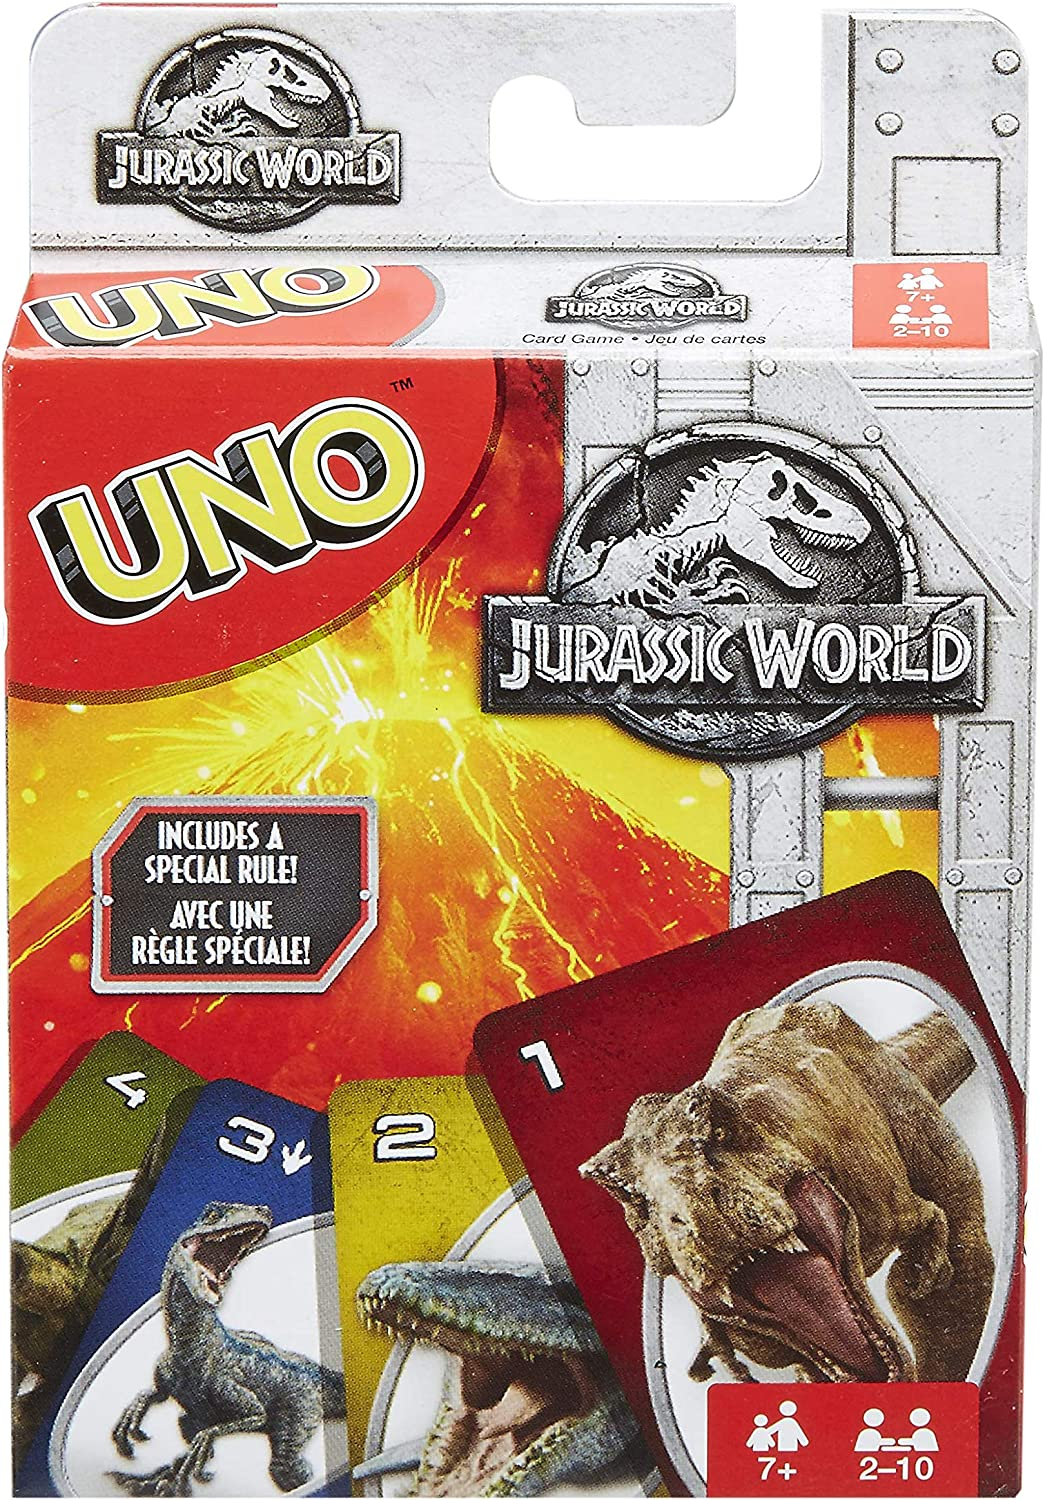 UNO: Jurassic World - Card Game